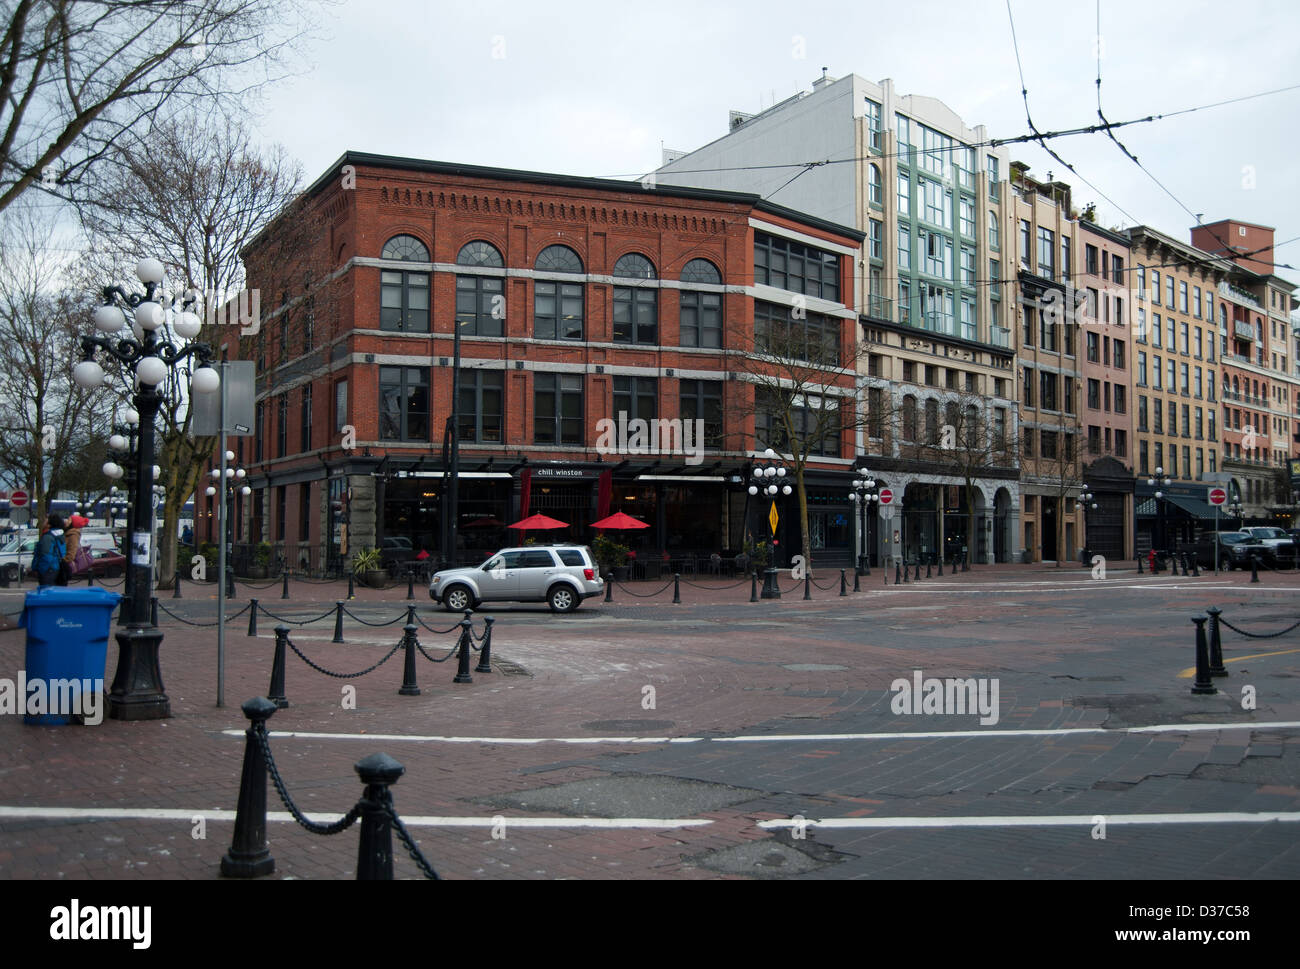 Chill Winston Restaurant in Gastown, Vancouver, British Columbia, Canada - Stock Image